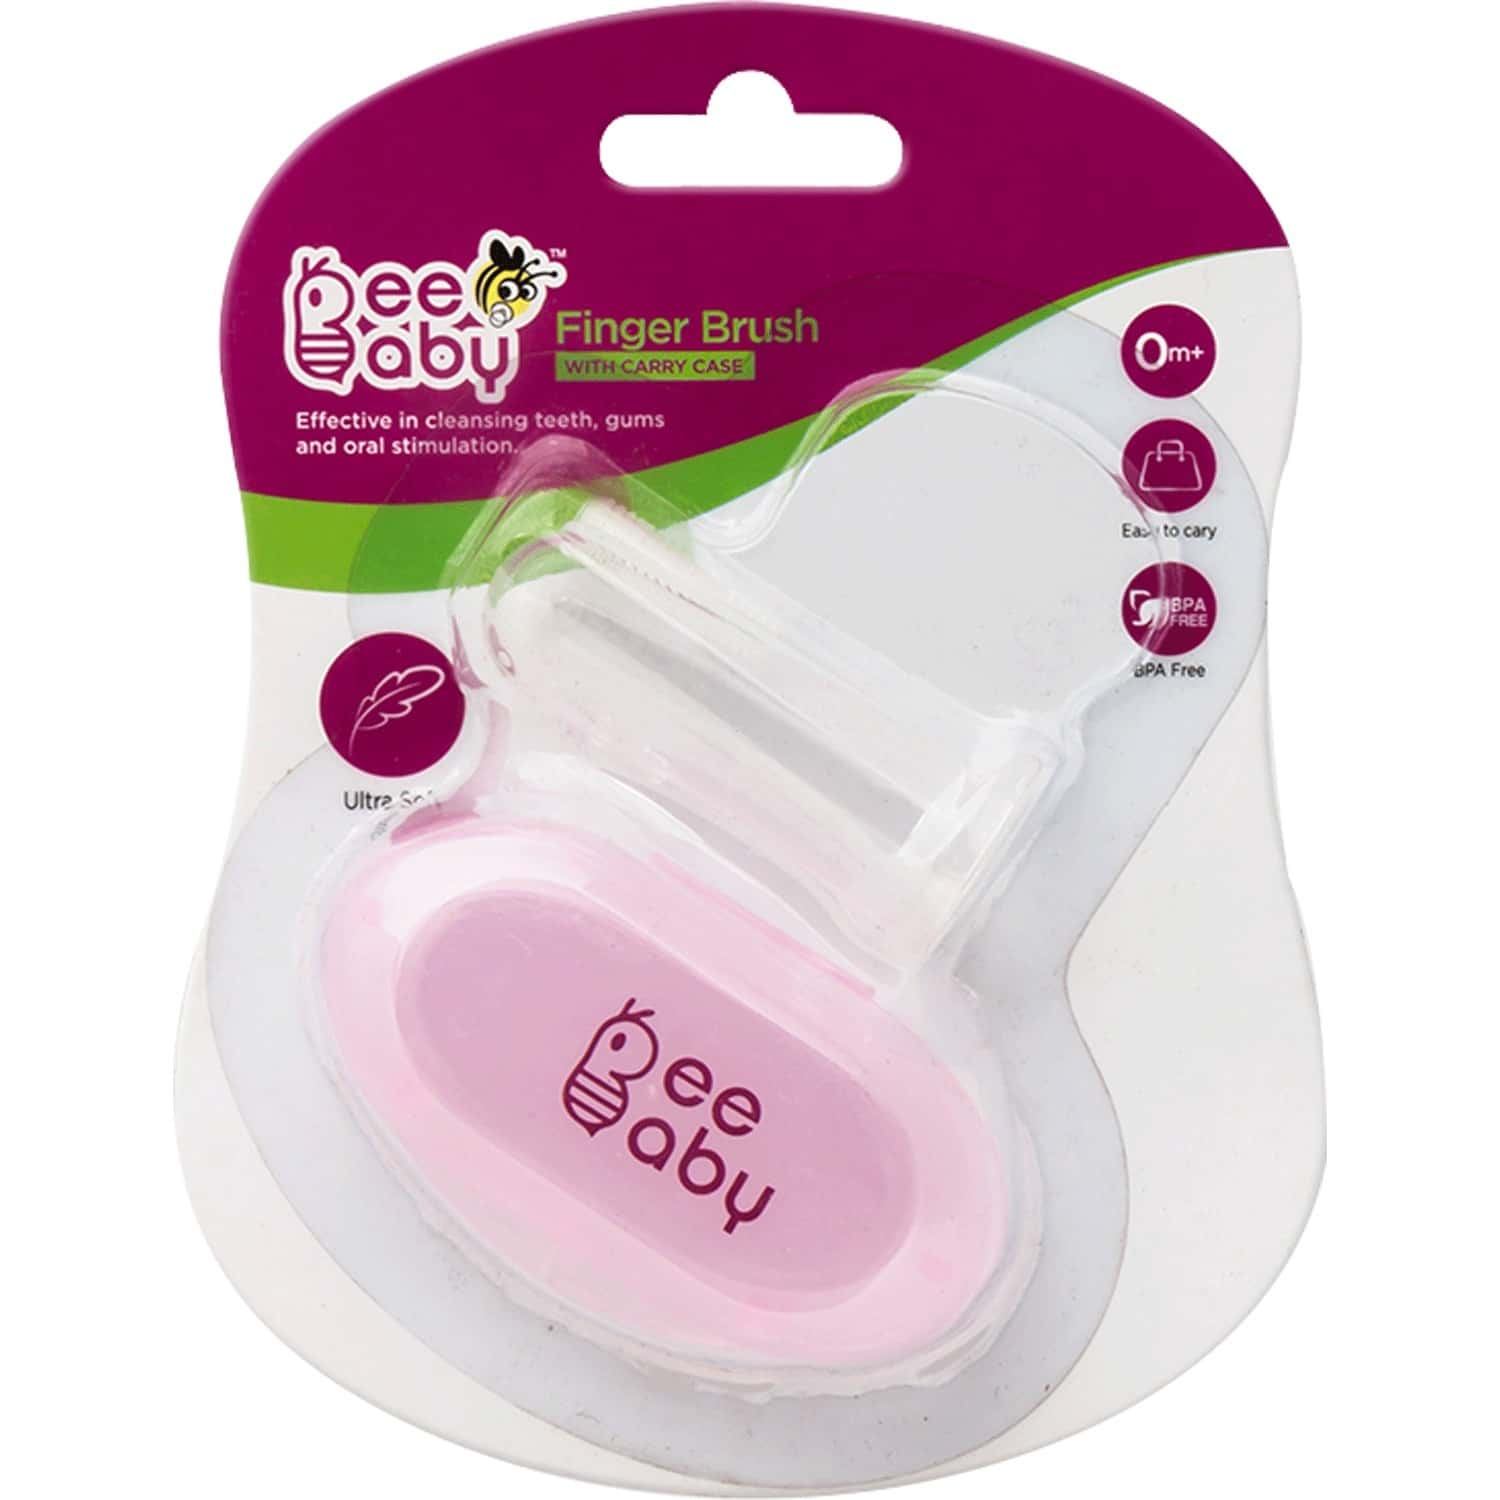 Beebaby Silicone Baby Finger Brush With Carry Case (pink)